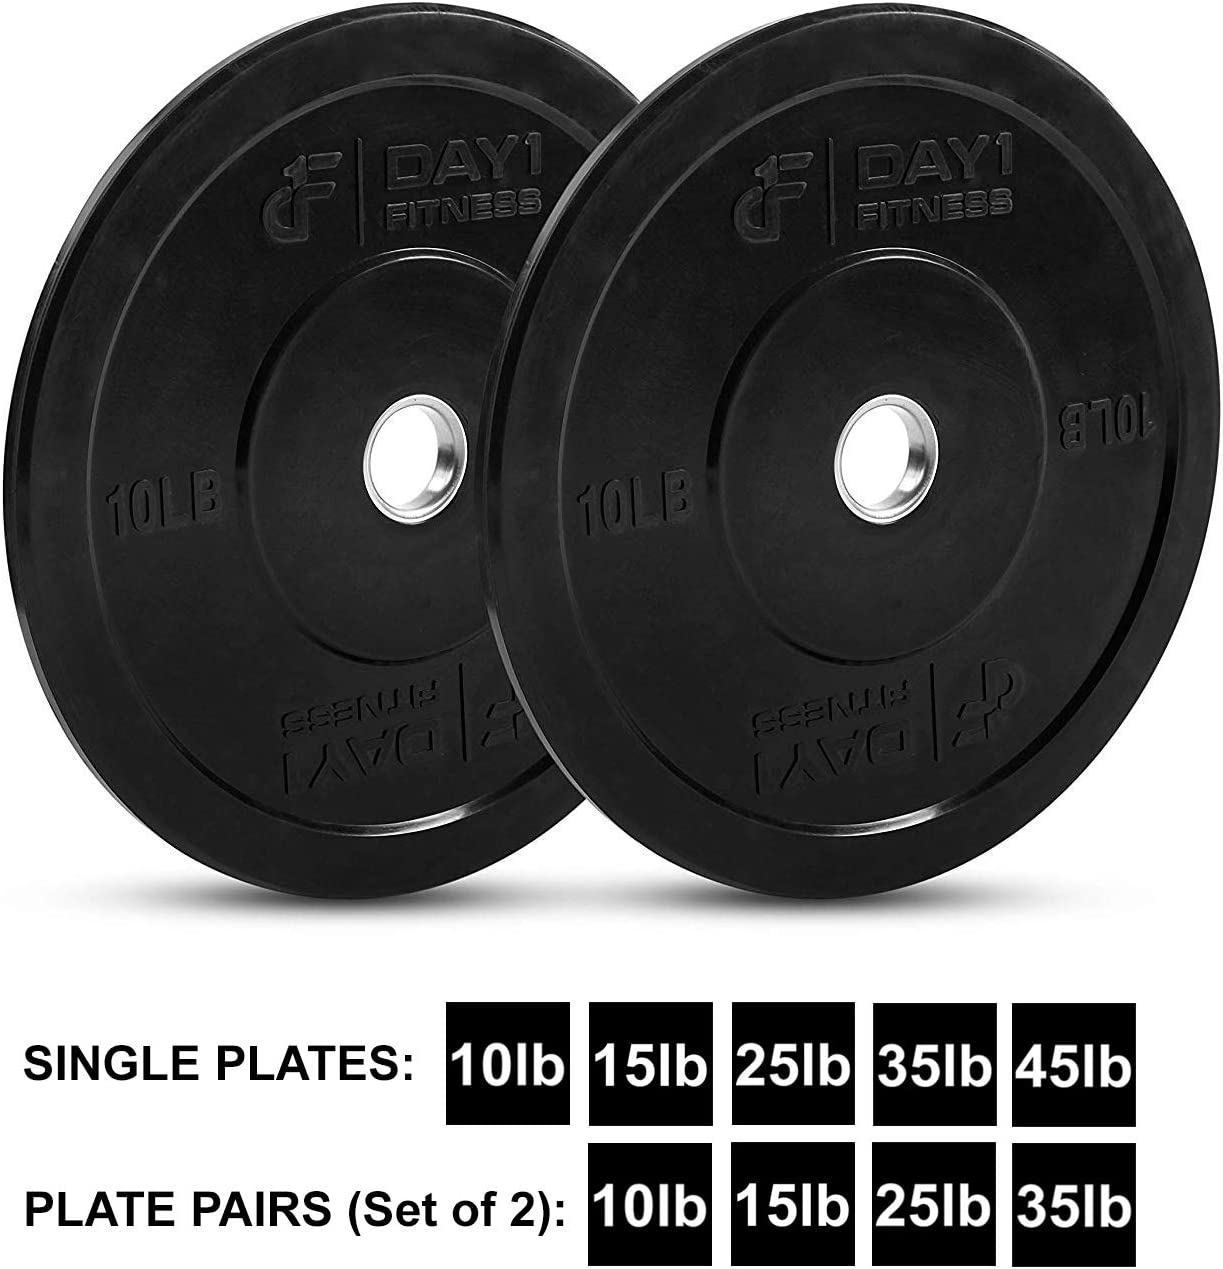 Day 1 Fitness Olympic Bumper Weighted Plate 2 for Barbells, Bars 10 lb Single Plate – Shock-Absorbing, Minimal Bounce Steel Weights with Bumpers for Lifting, Strength Training, and Working Out